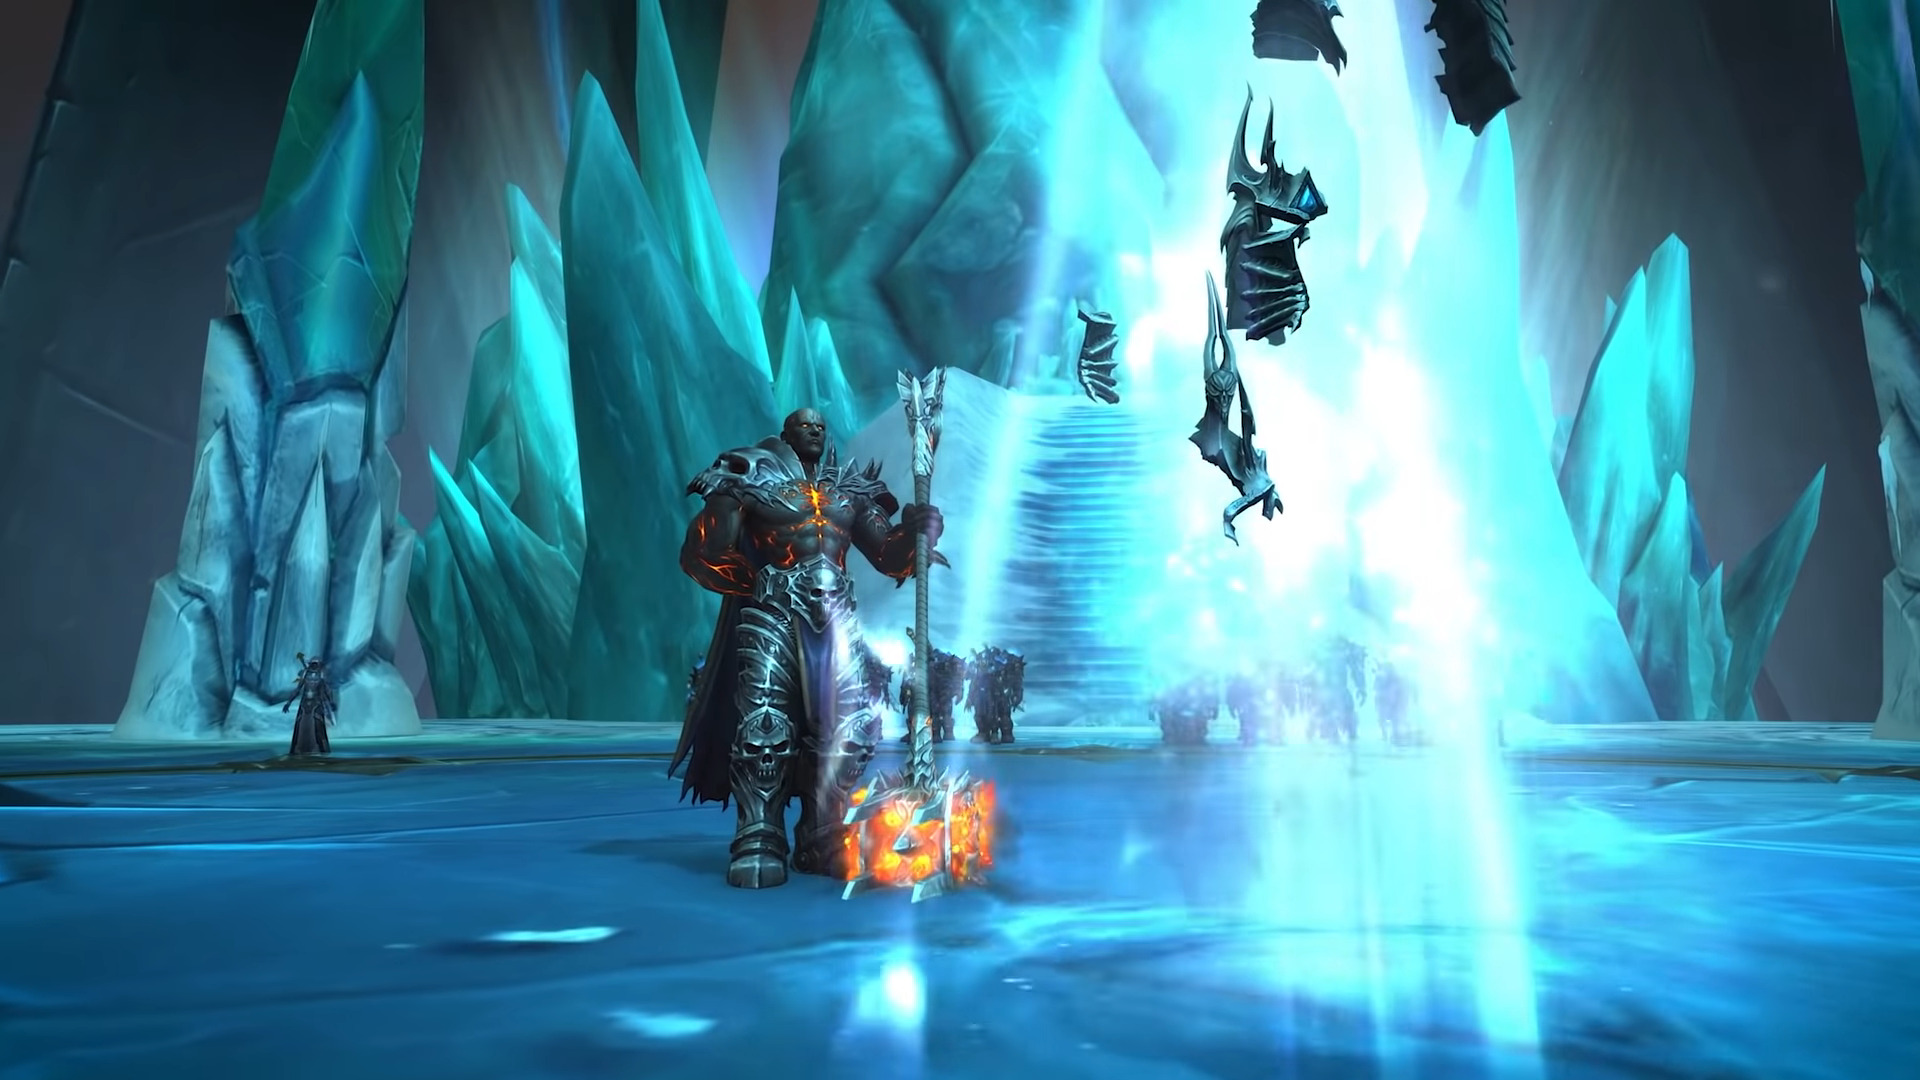 Blizzard Confirms World Of Warcraft: Shadowlands Pre-expansion Patch Will Arrive On October 13